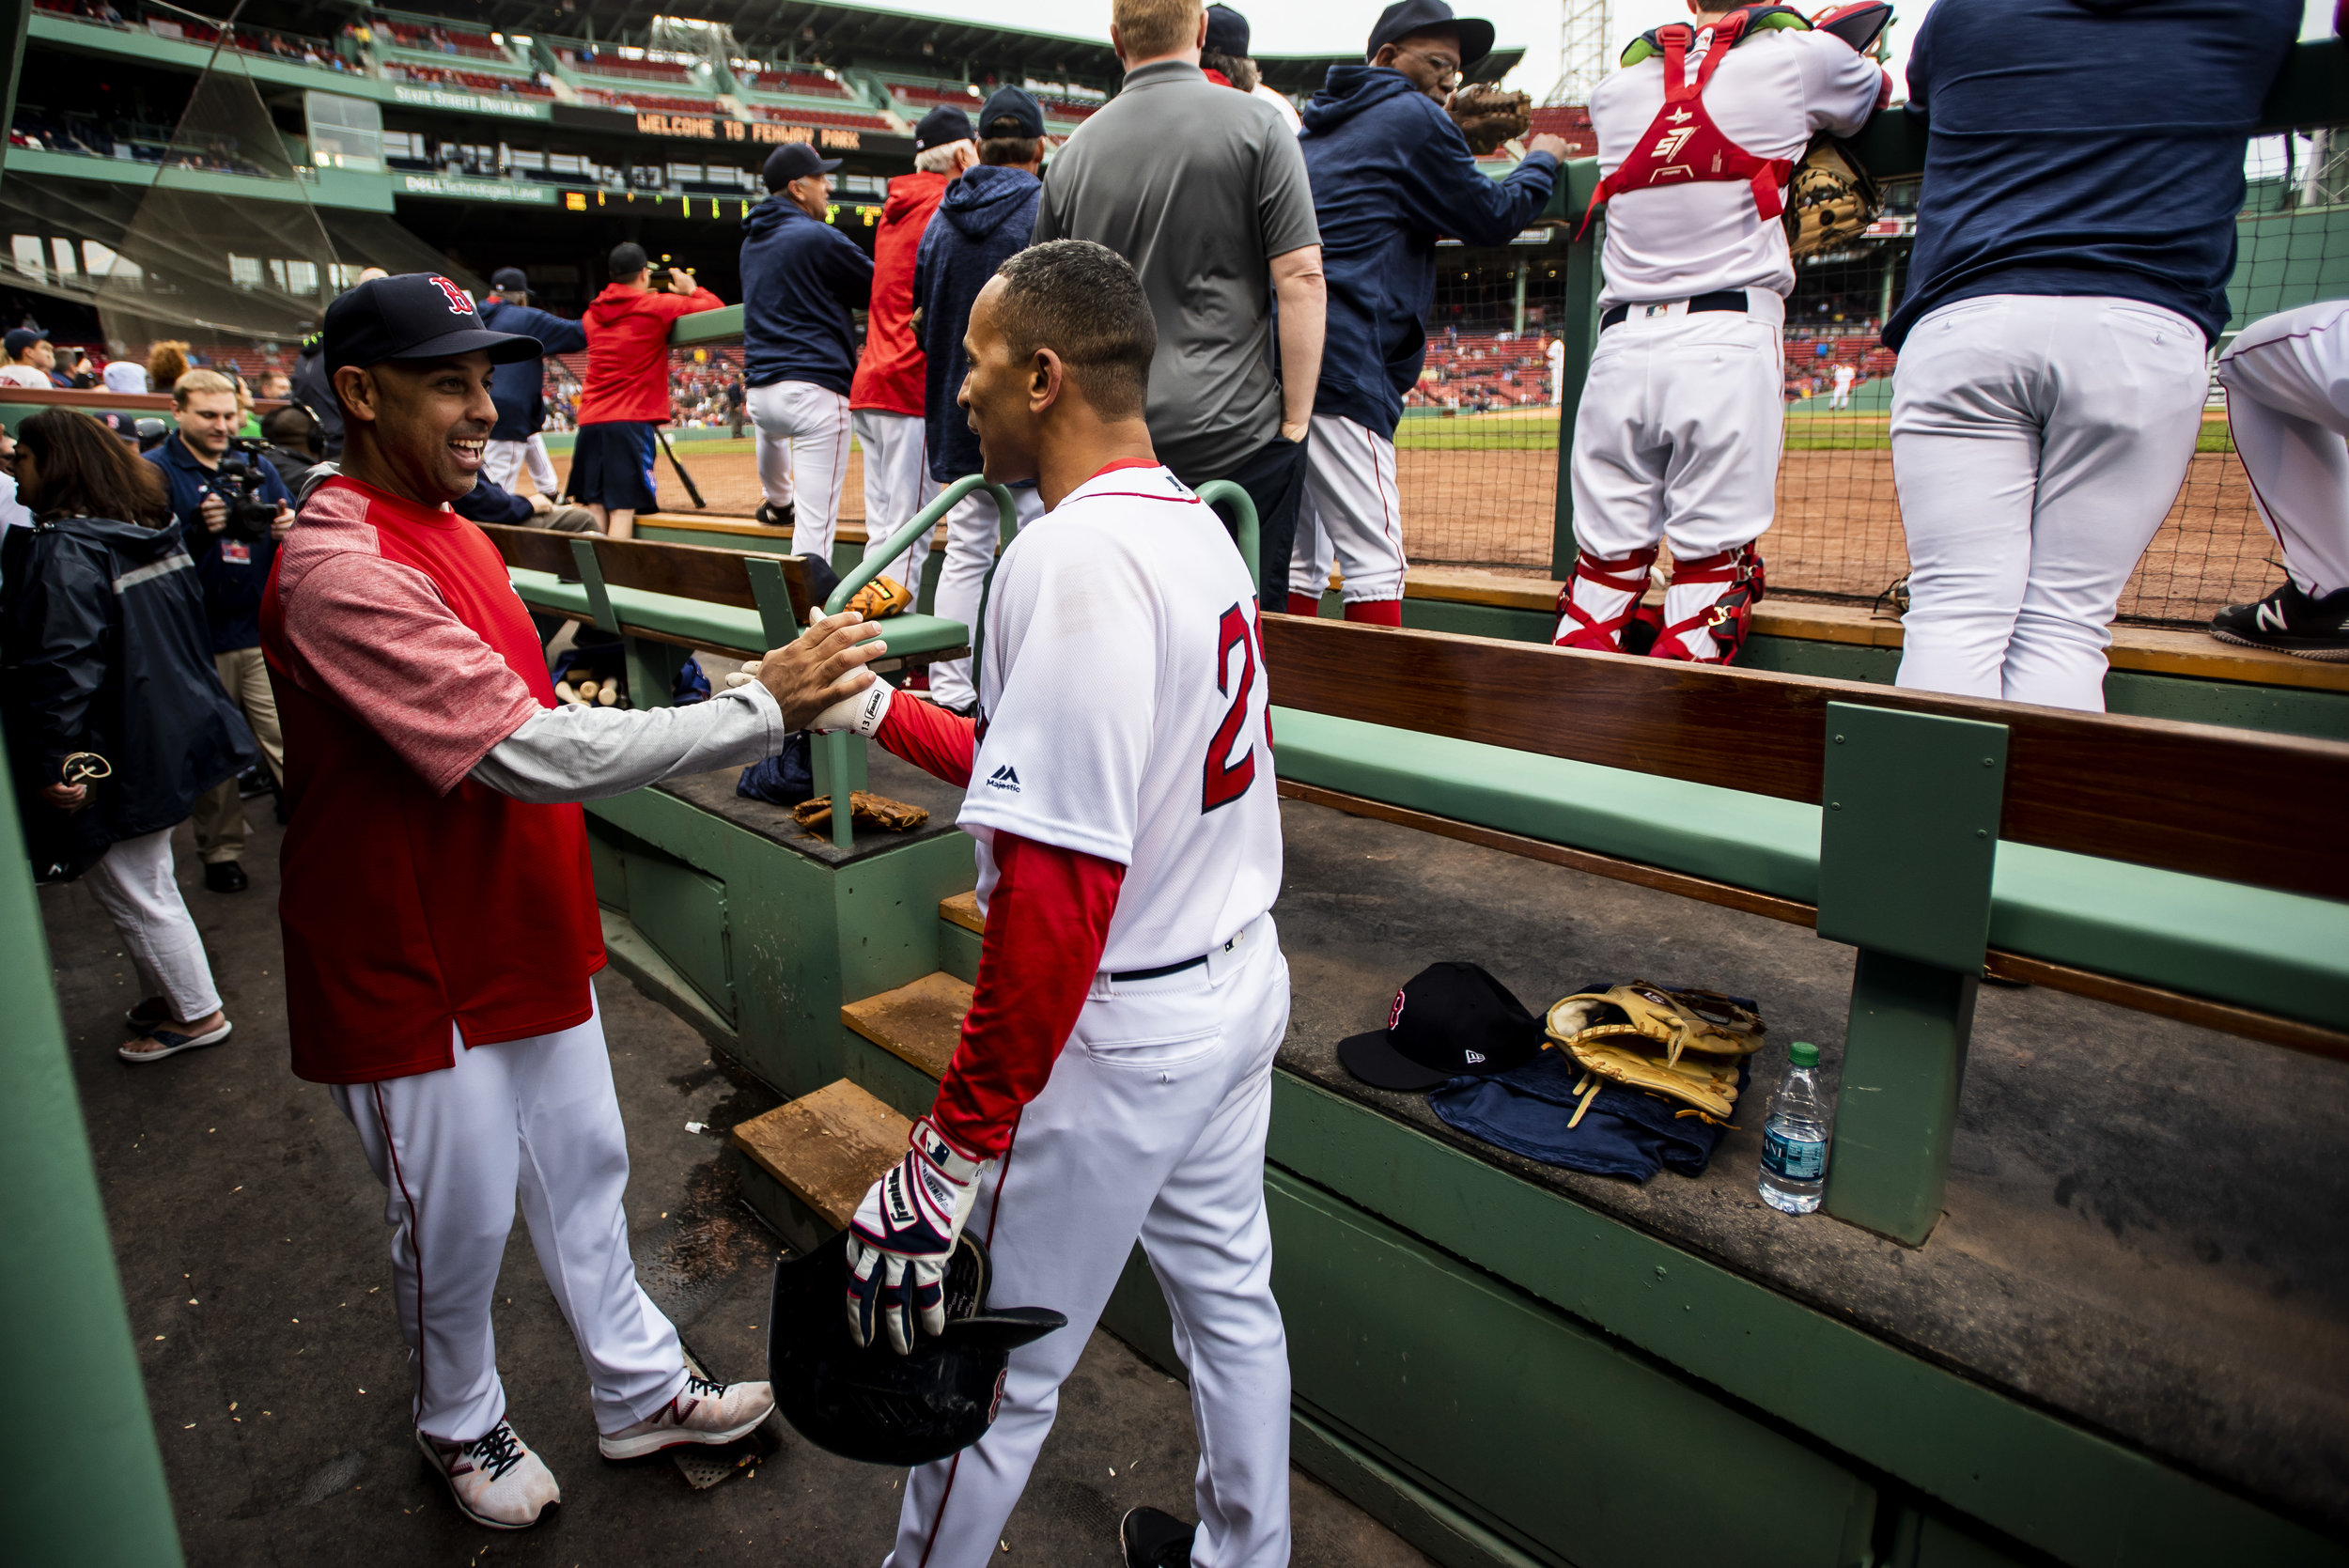 May 27, 2018, Boston, MA: Red Sox Manager Alex Core high-fives former Red Sox infielder Julio Lugo after he hit a home run during the Red Alumni Game at Fenway Park in Boston, Massachusetts on Sunday, May 27, 2018. (Photo by Matthew Thomas/Boston Red Sox)